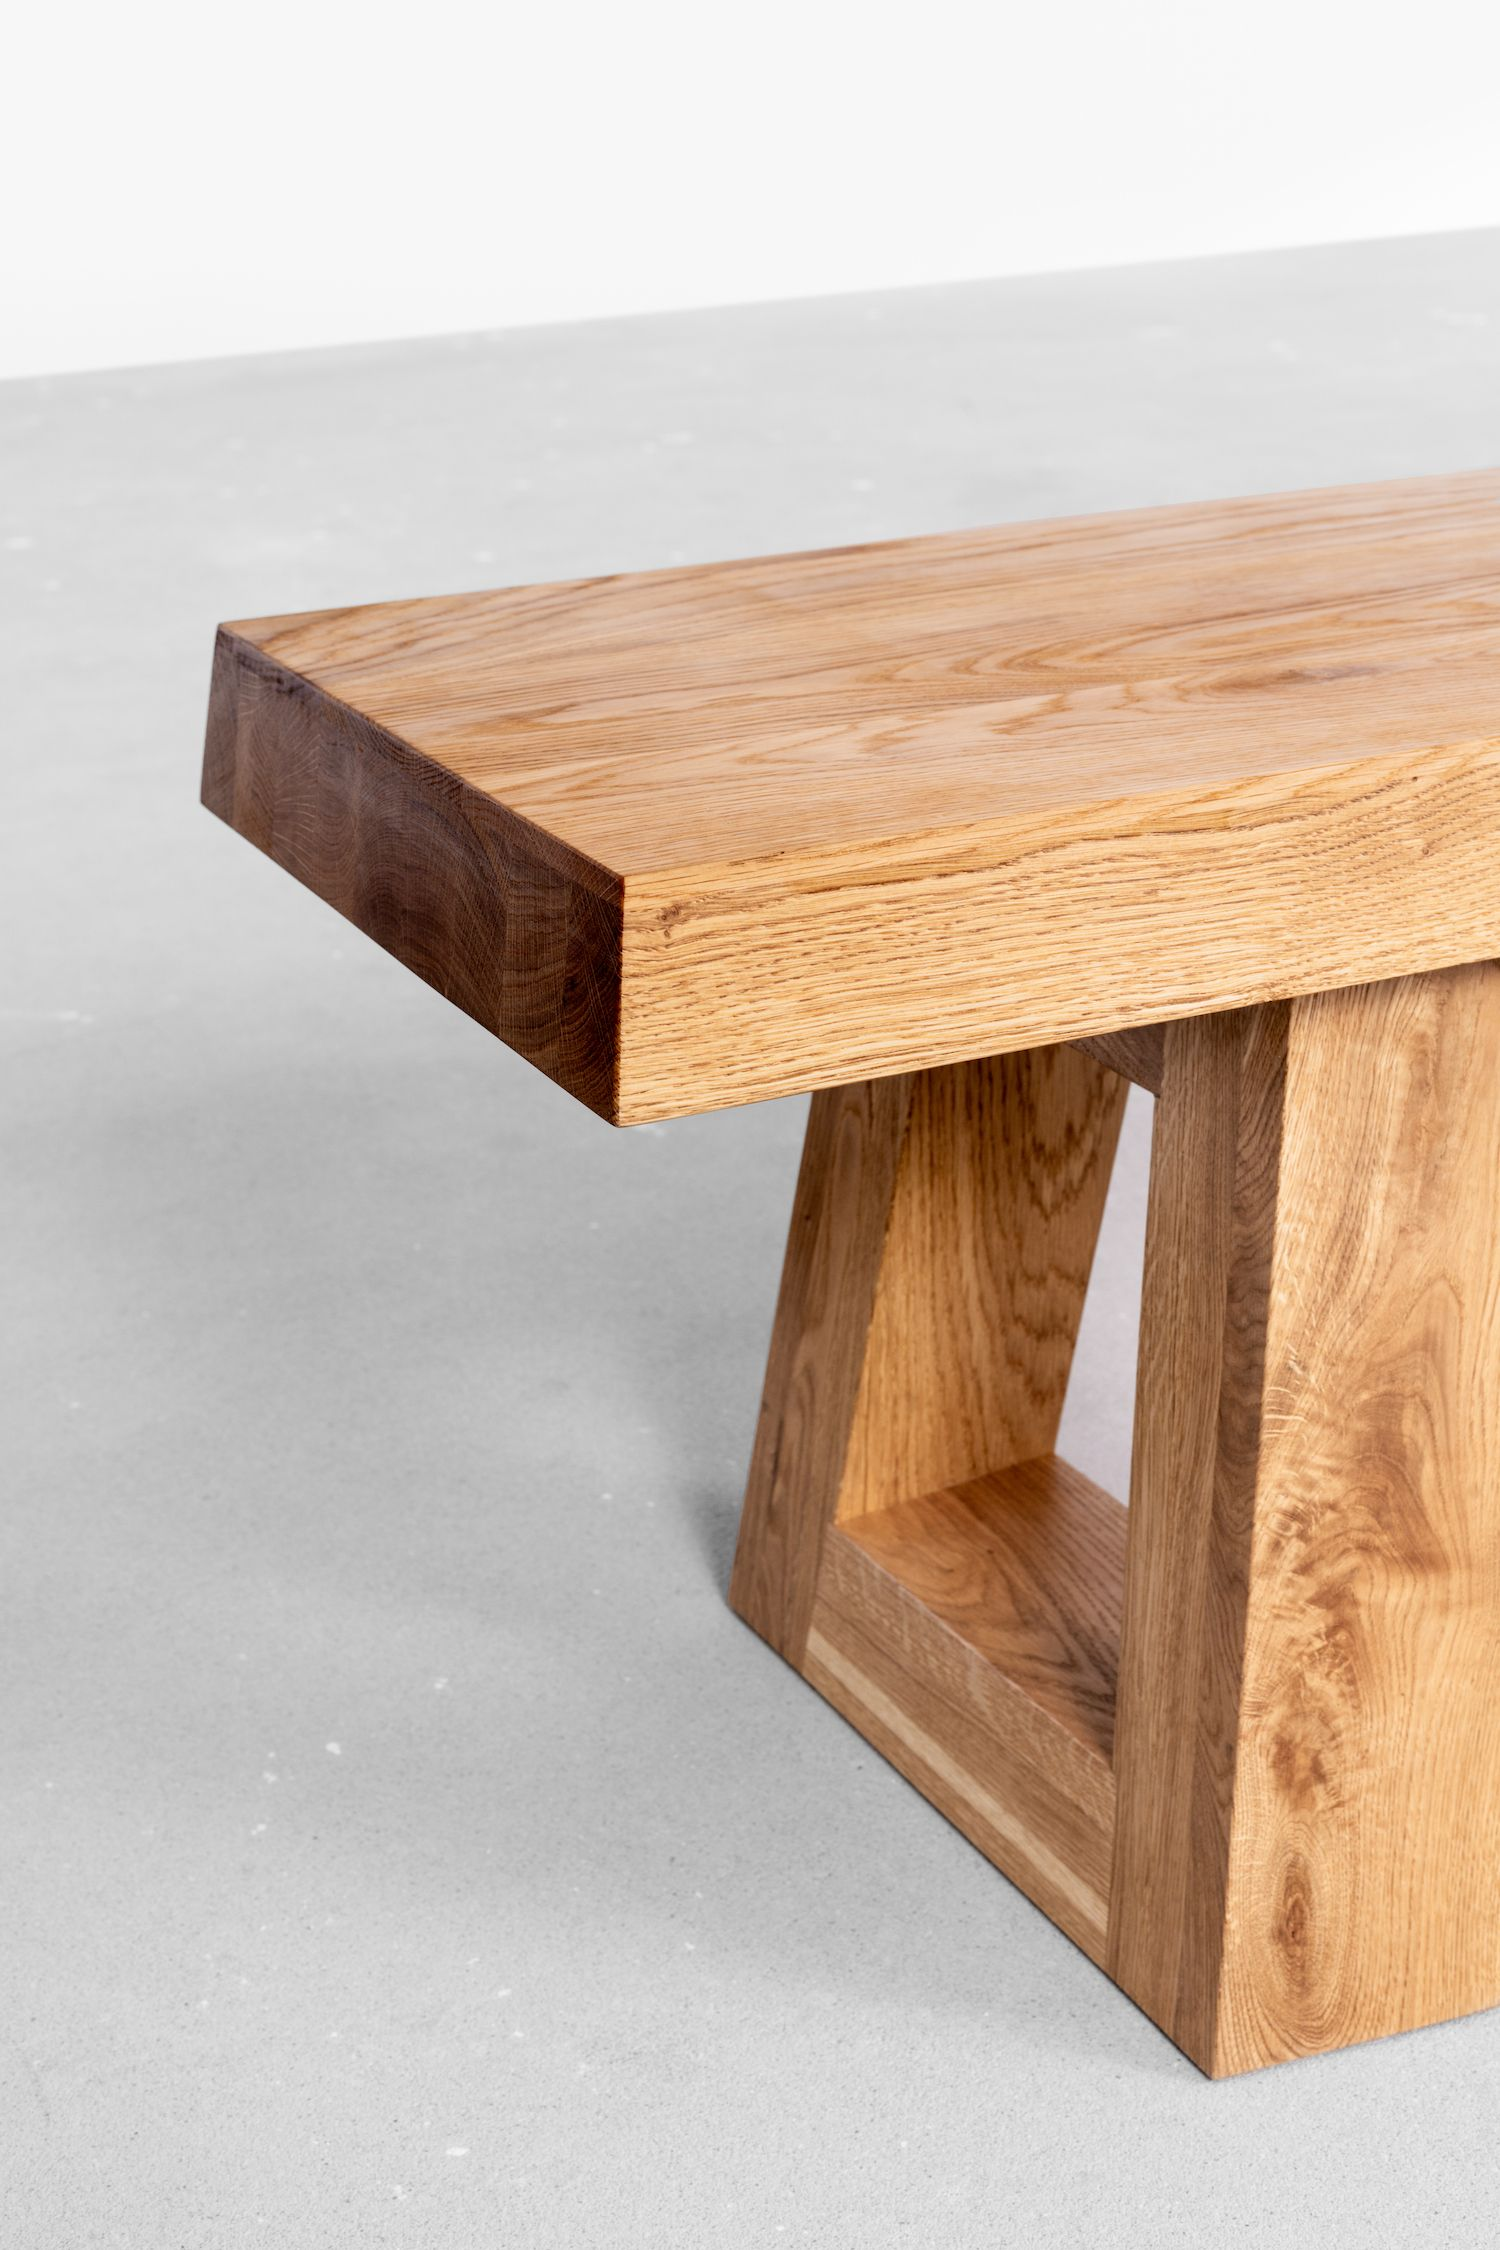 Wooden Modern Oak Bench - Raw